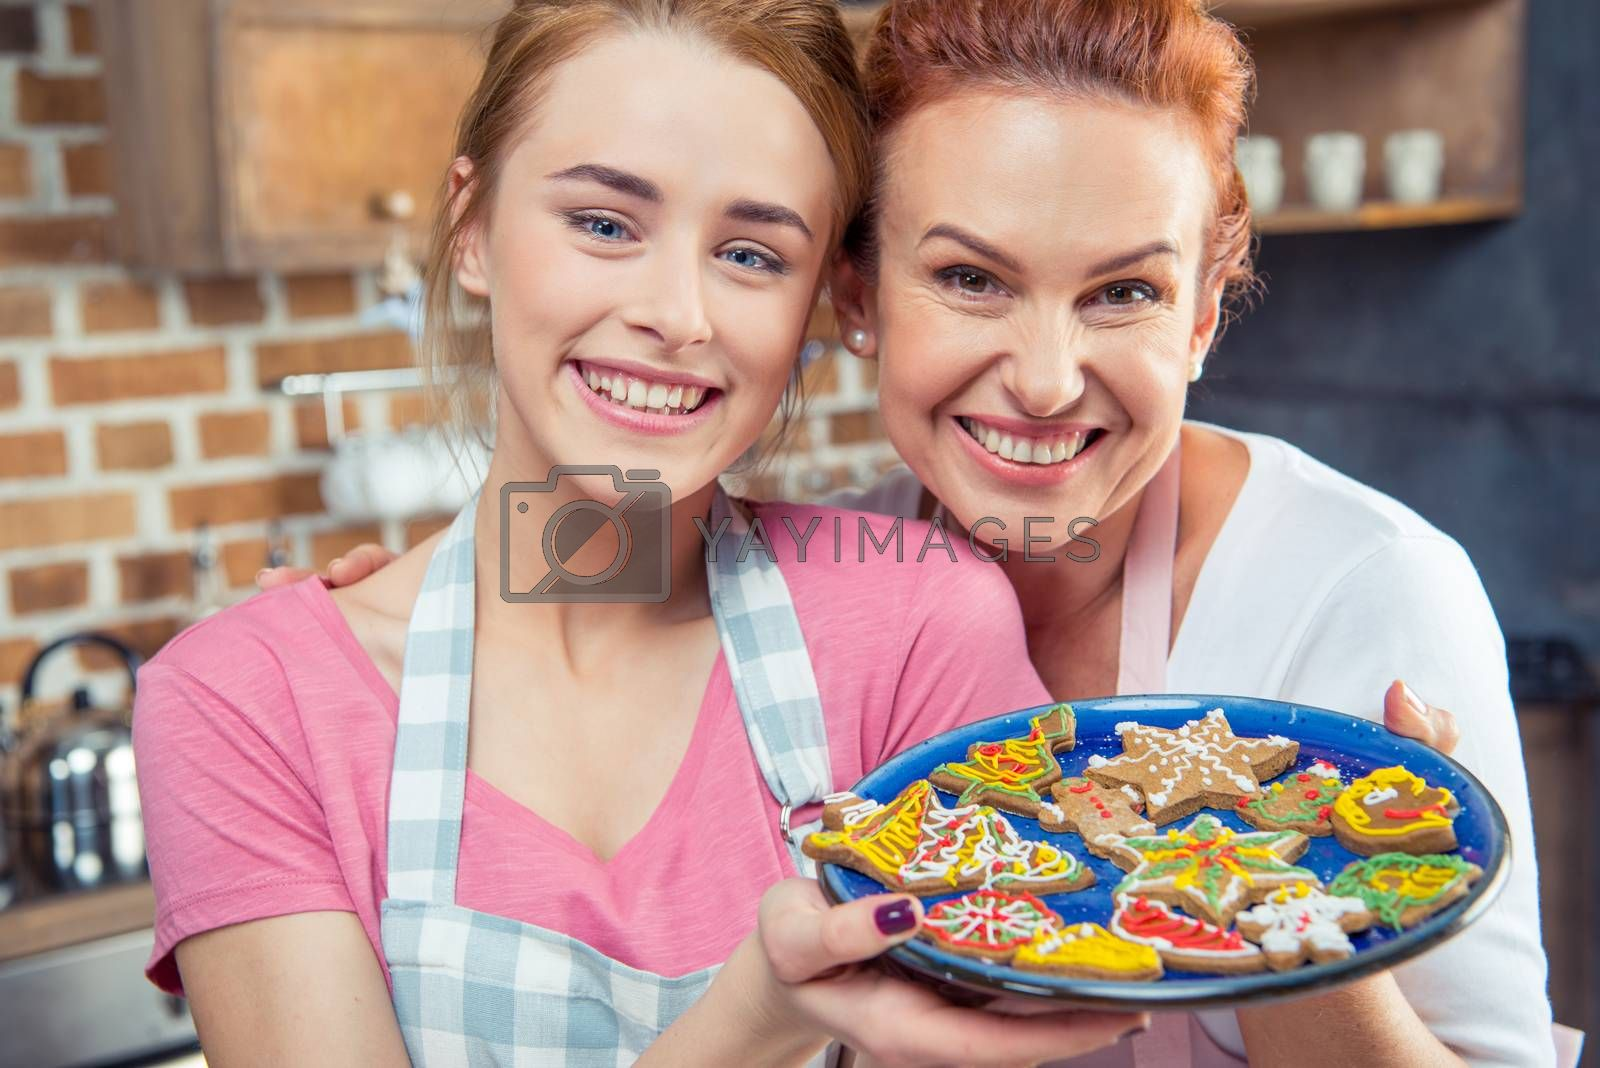 Smiling mother and her daughter holding plate with Christmas cookies and smiling